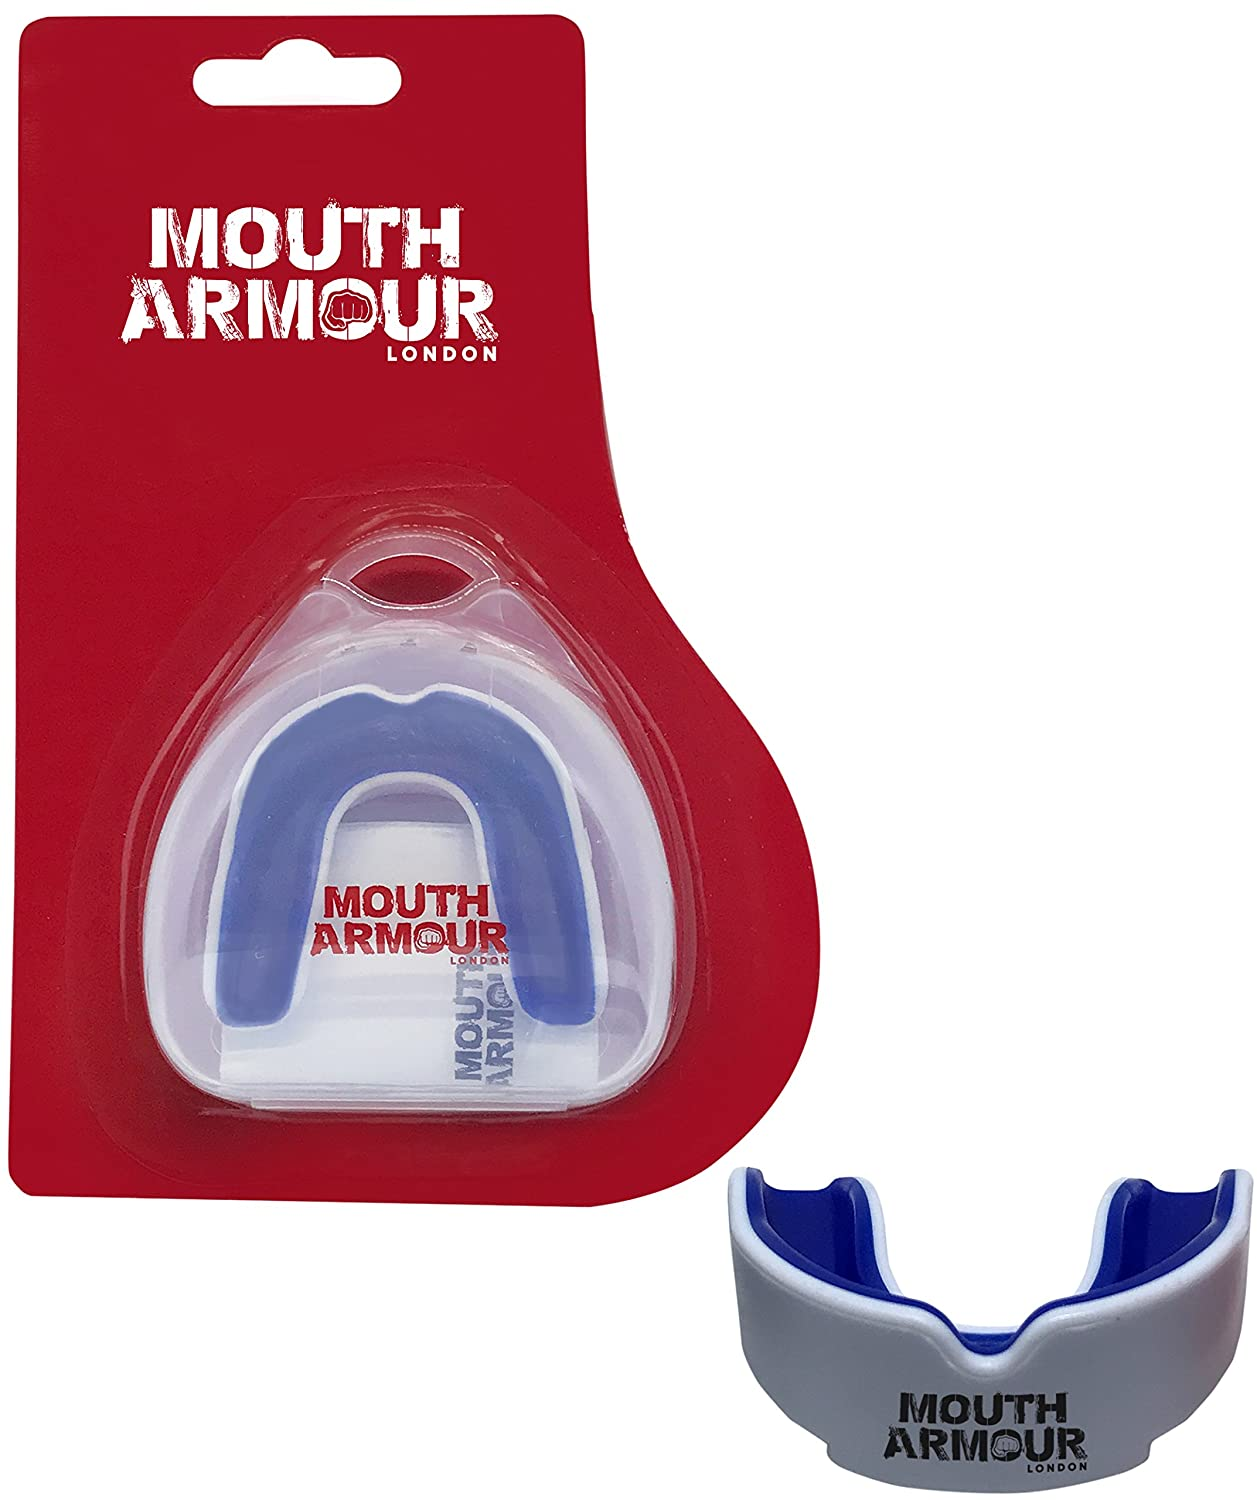 Adult Mouthguard: Mouth Guard Sports, Gum Shield Boxing, Mouthguard, Adult Rugby Mouth Guard, MMA Mouthguard, Gum shields, Boxing Mouthpiece, Mouthguards for Sports Gumshields Mouth Armour London